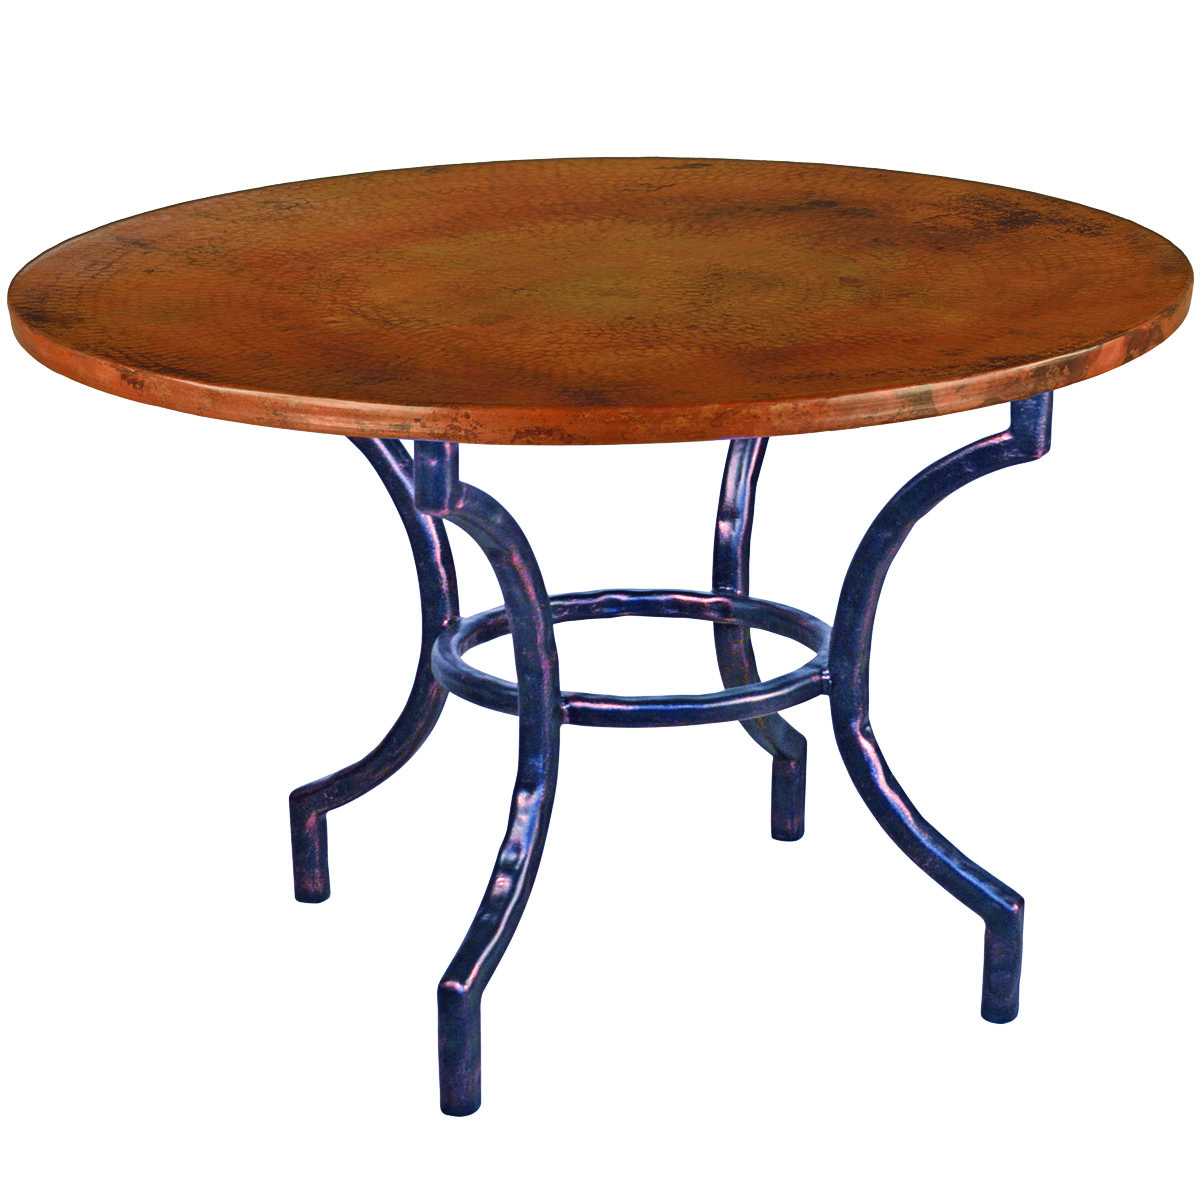 Tallulah Gorge Dining Table